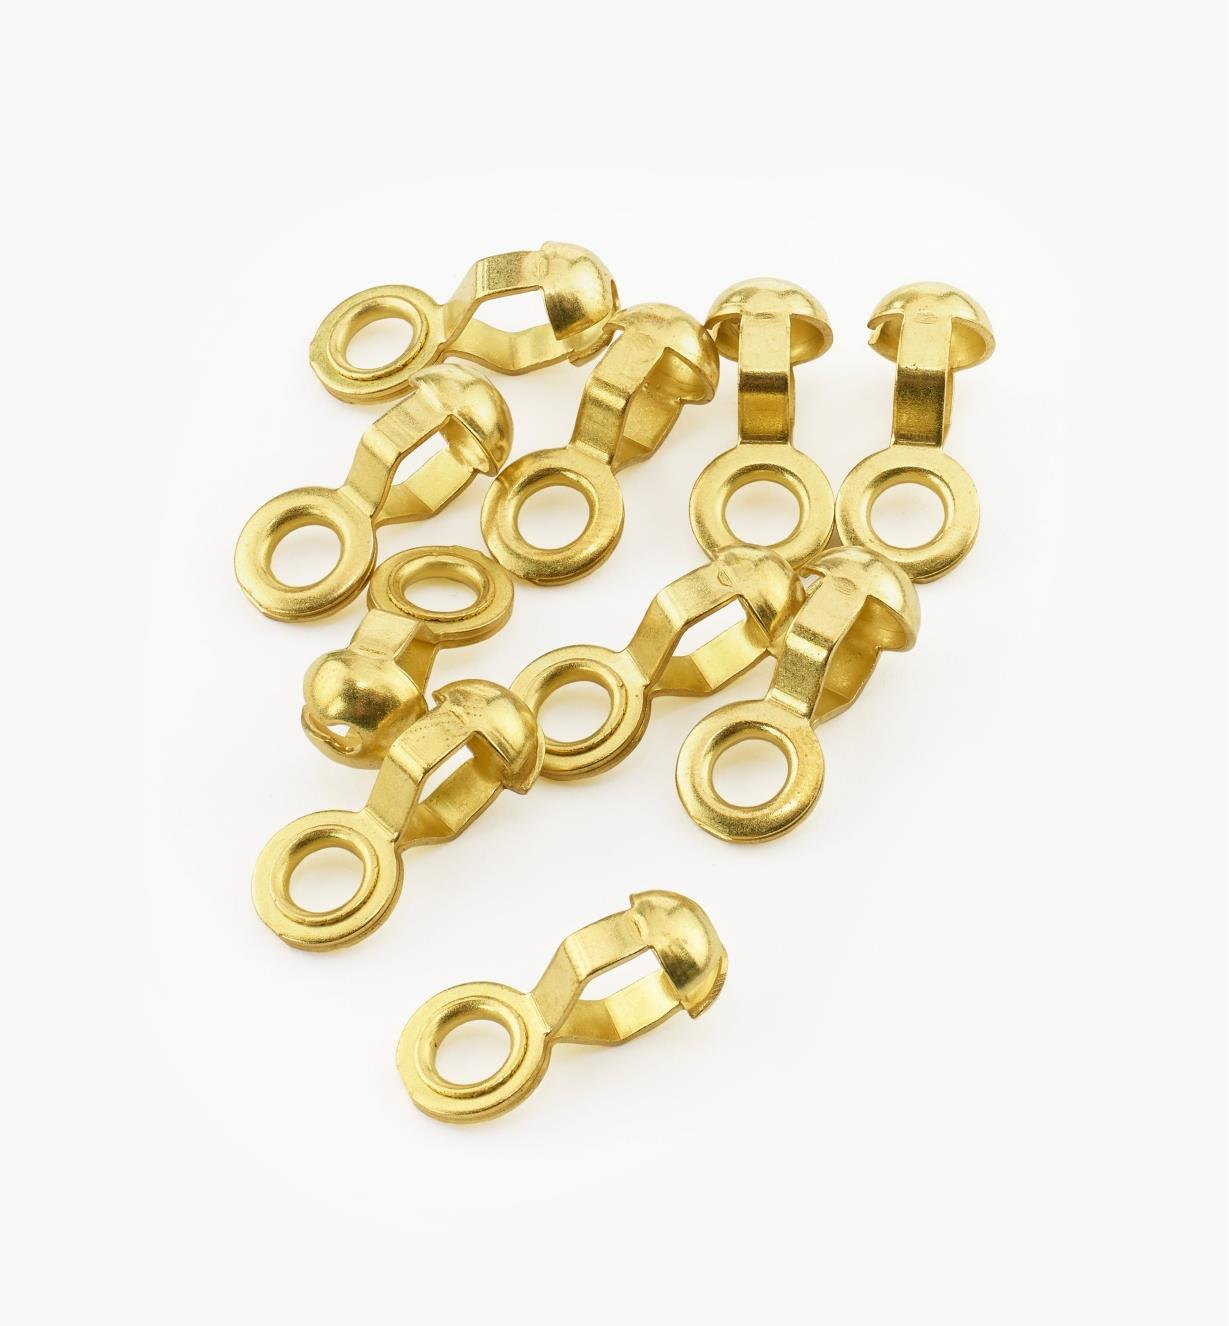 00G4520 - #10 End Rings, pkg. of 10